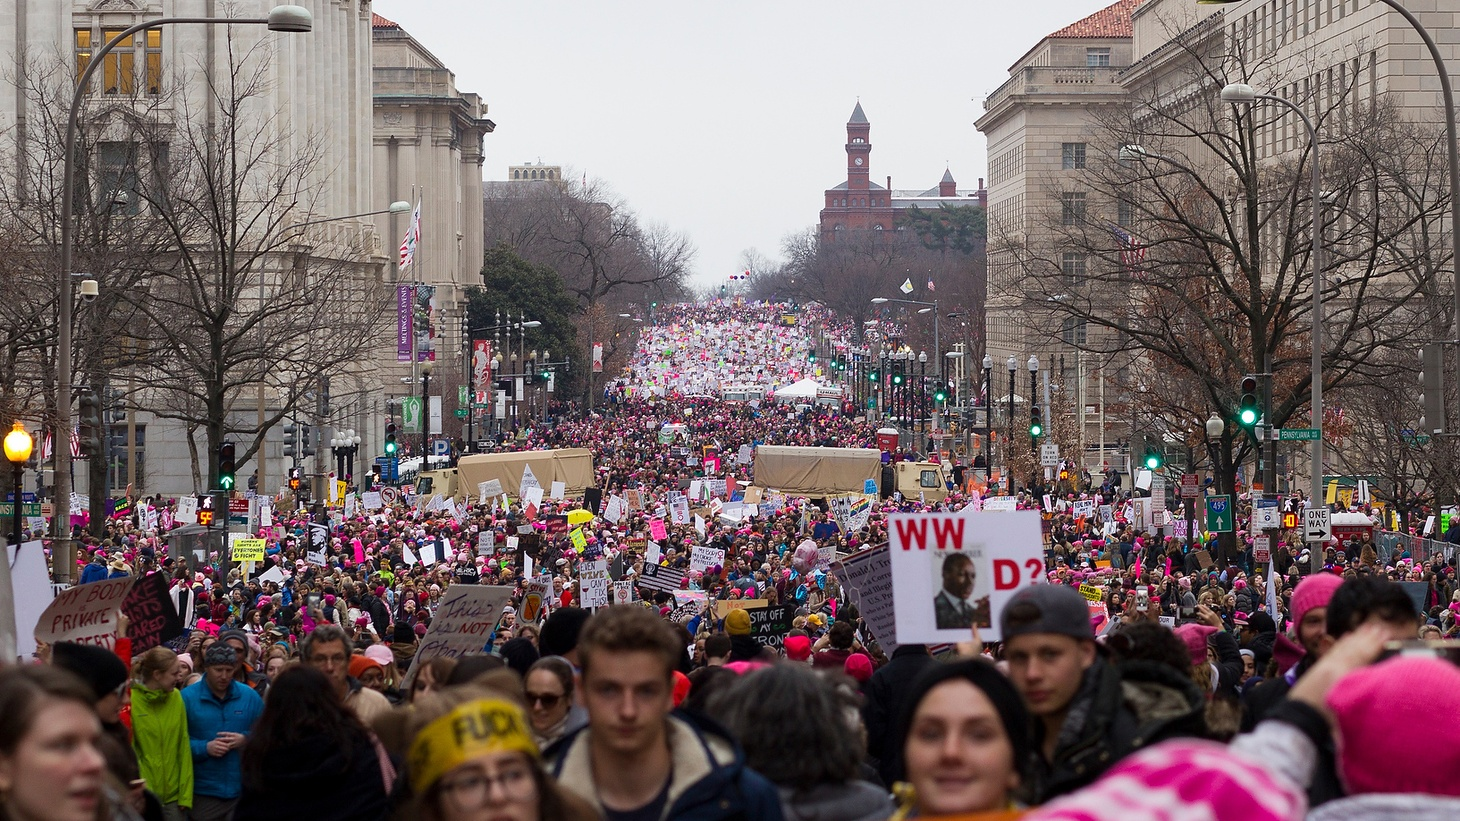 Millions worldwide attended women's marches on Saturday. Longtime protester Dolores Huerta has advice for younger activists. We speak with a march leader, along with an anti-abortion activist who attended the event in DC. Also, how effective have mass demonstrations been throughout history?